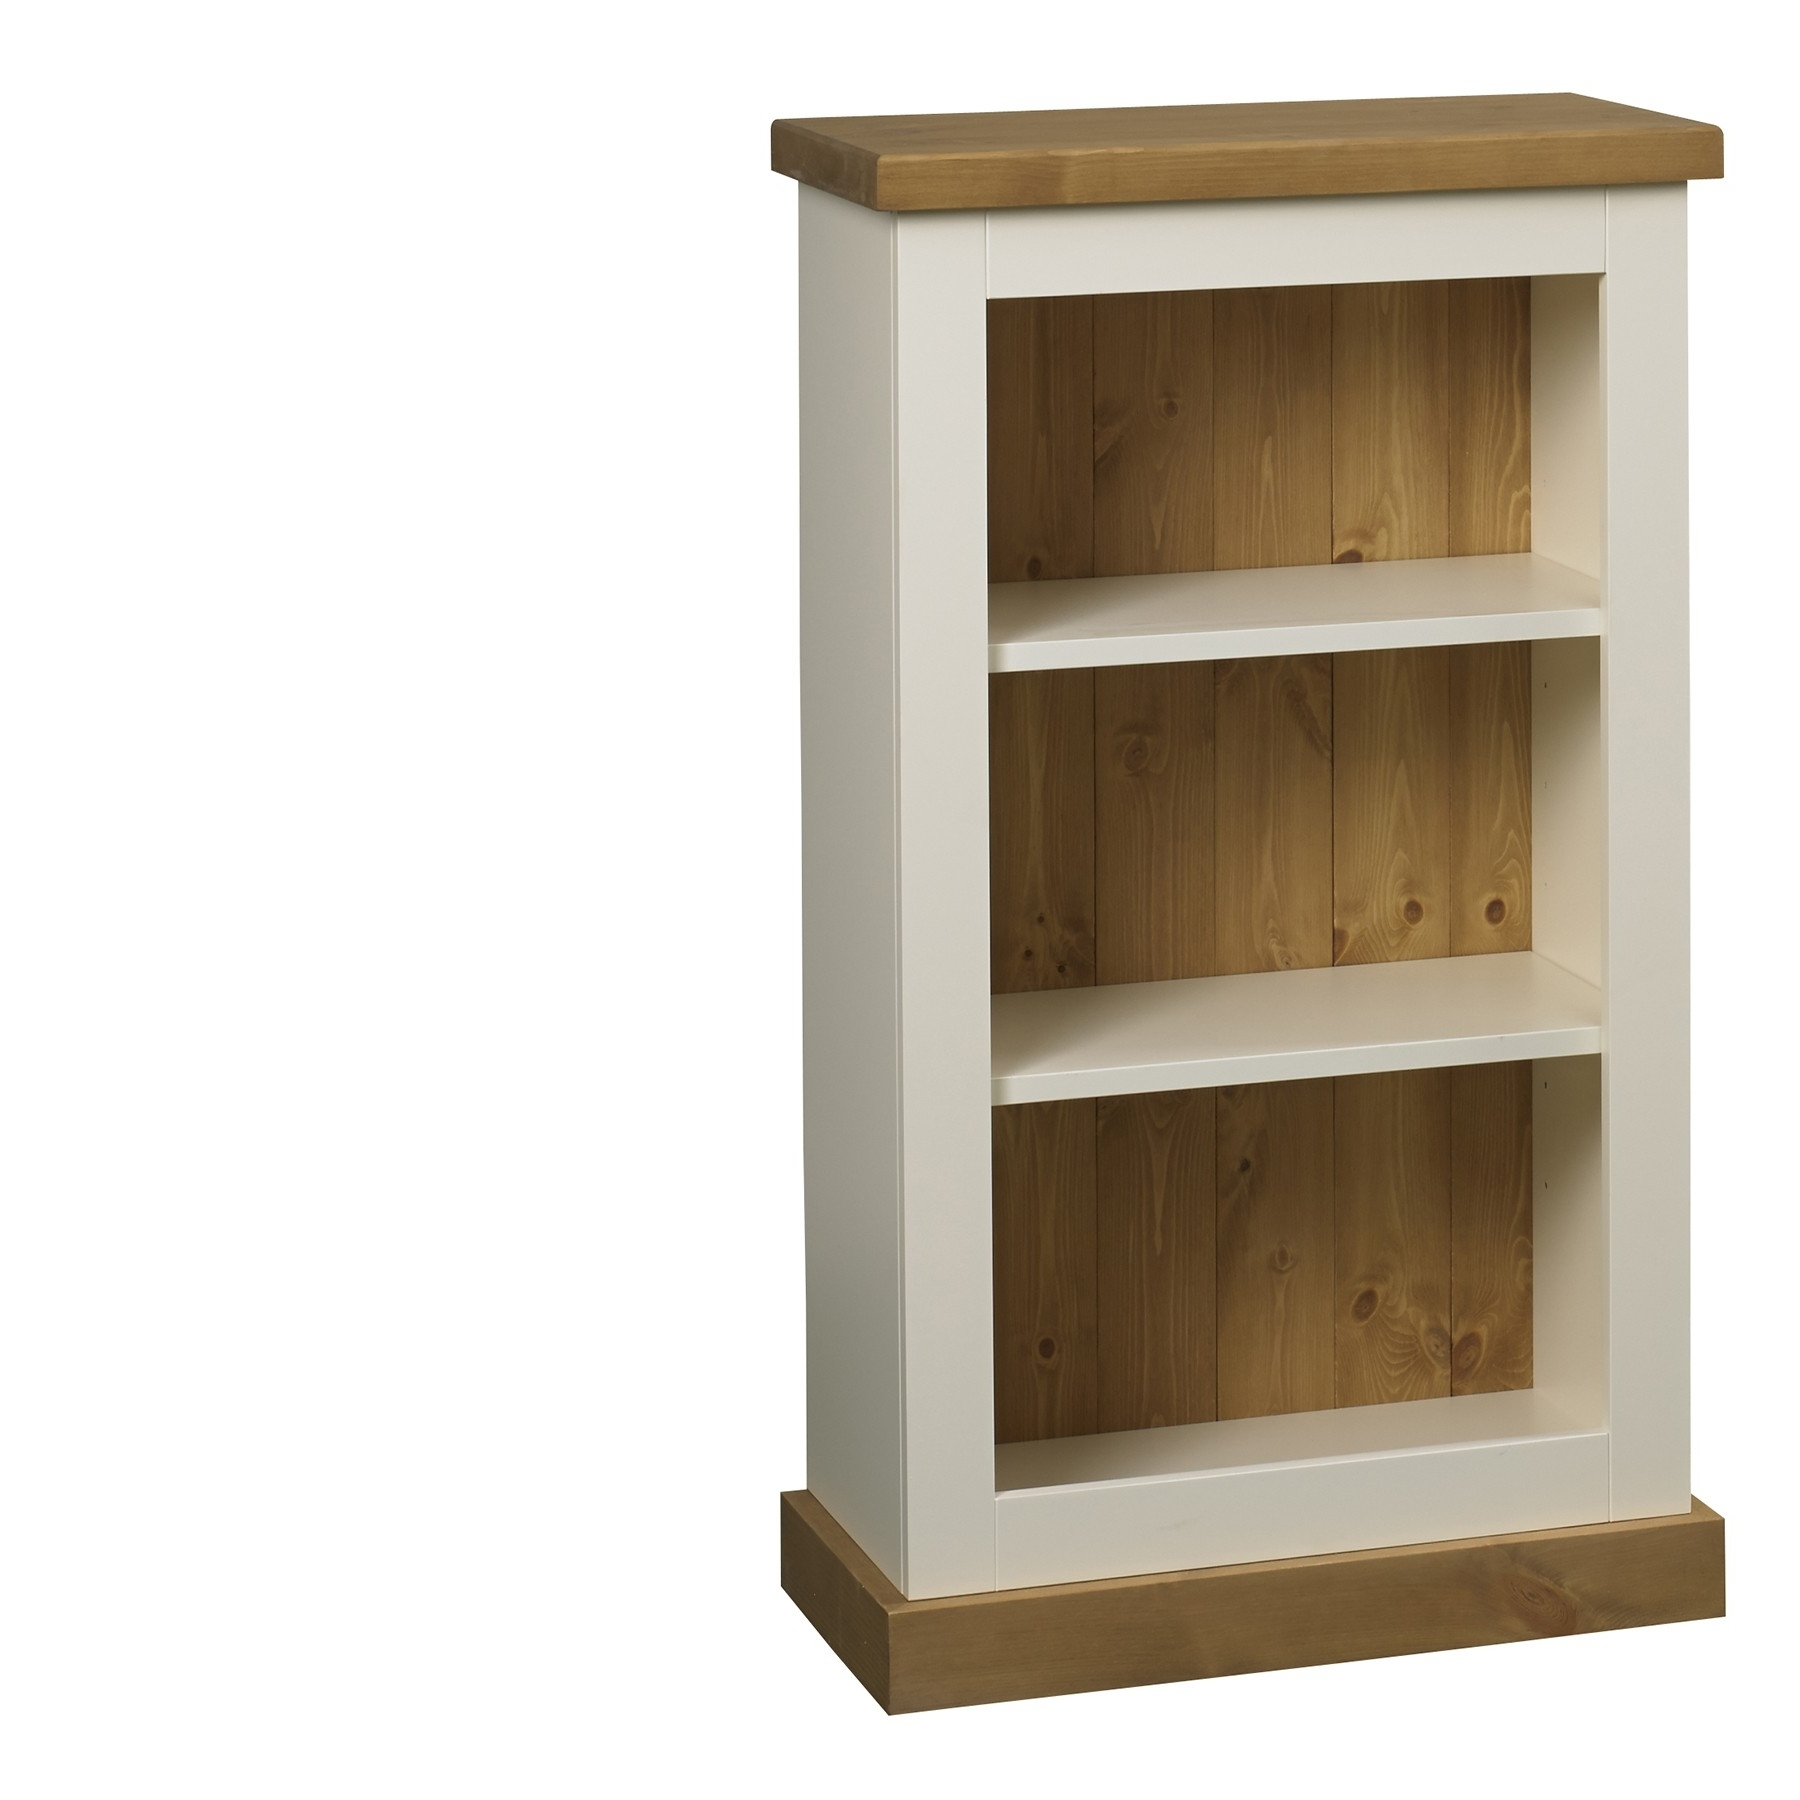 Most Recent Bookcase: Interesting Short Narrow Bookcase Cheap 3 Shelf Bookcase Inside Short Narrow Bookcases (View 8 of 15)